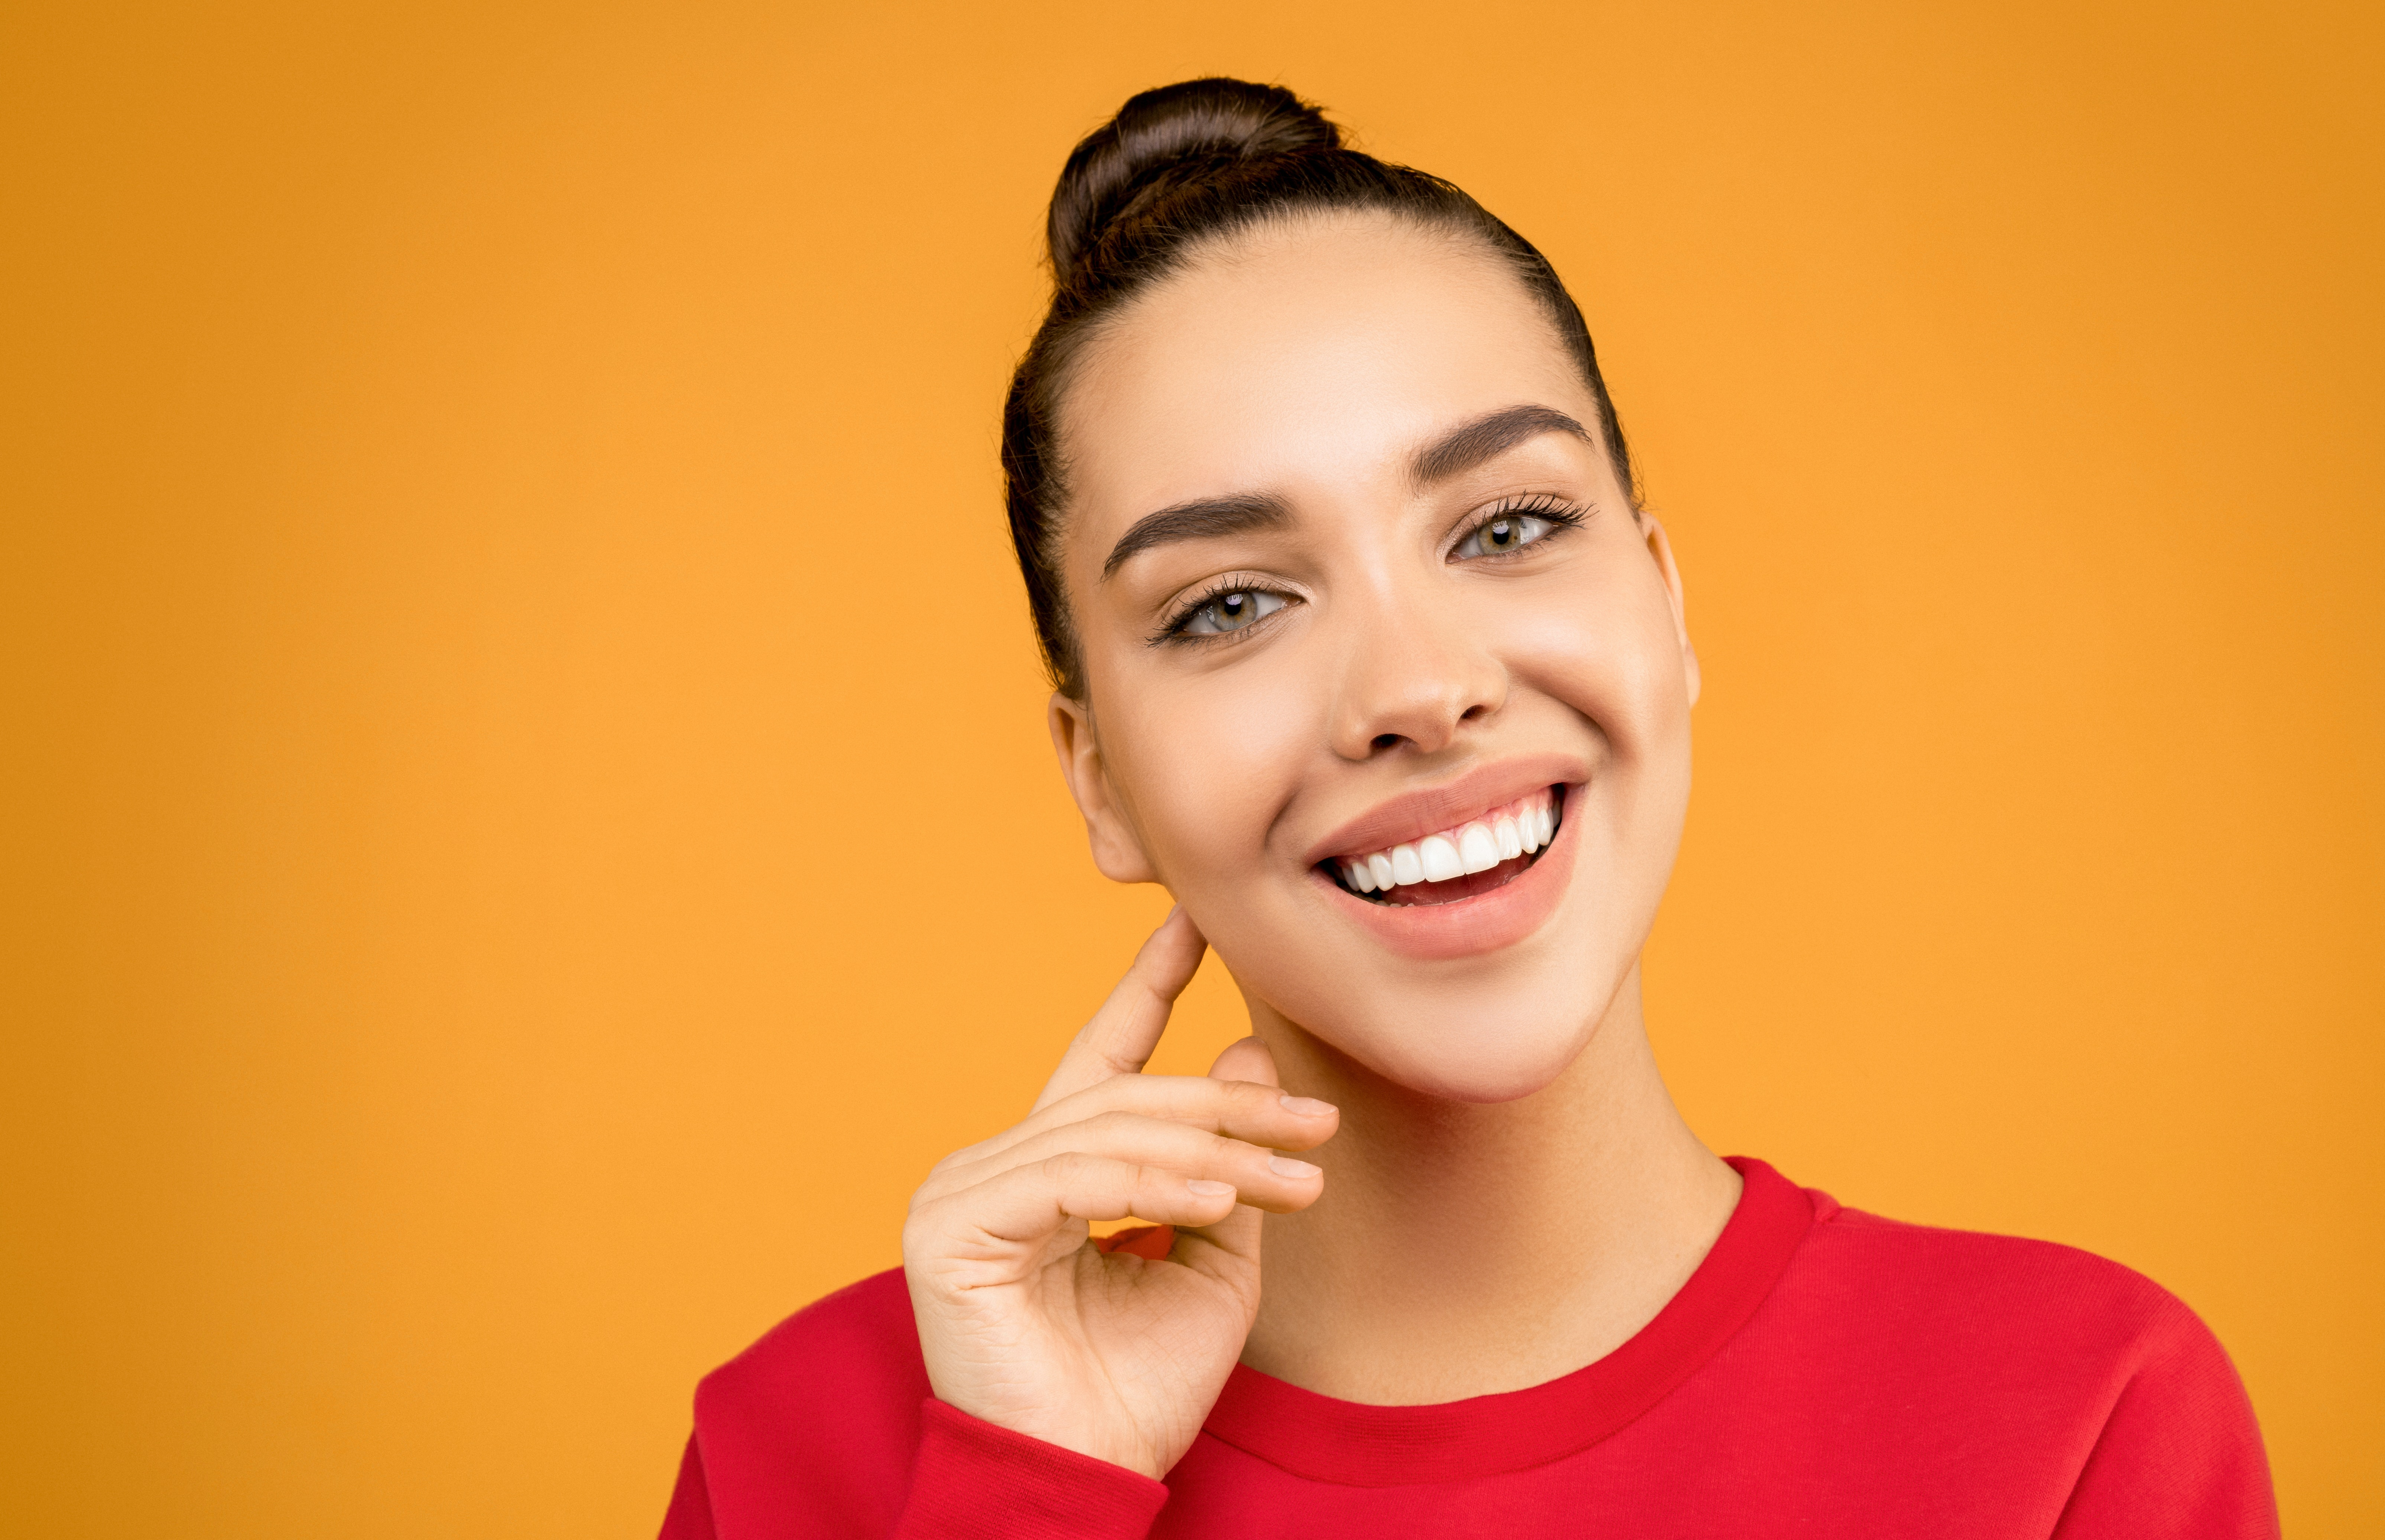 Woman smiling in front of orange background.